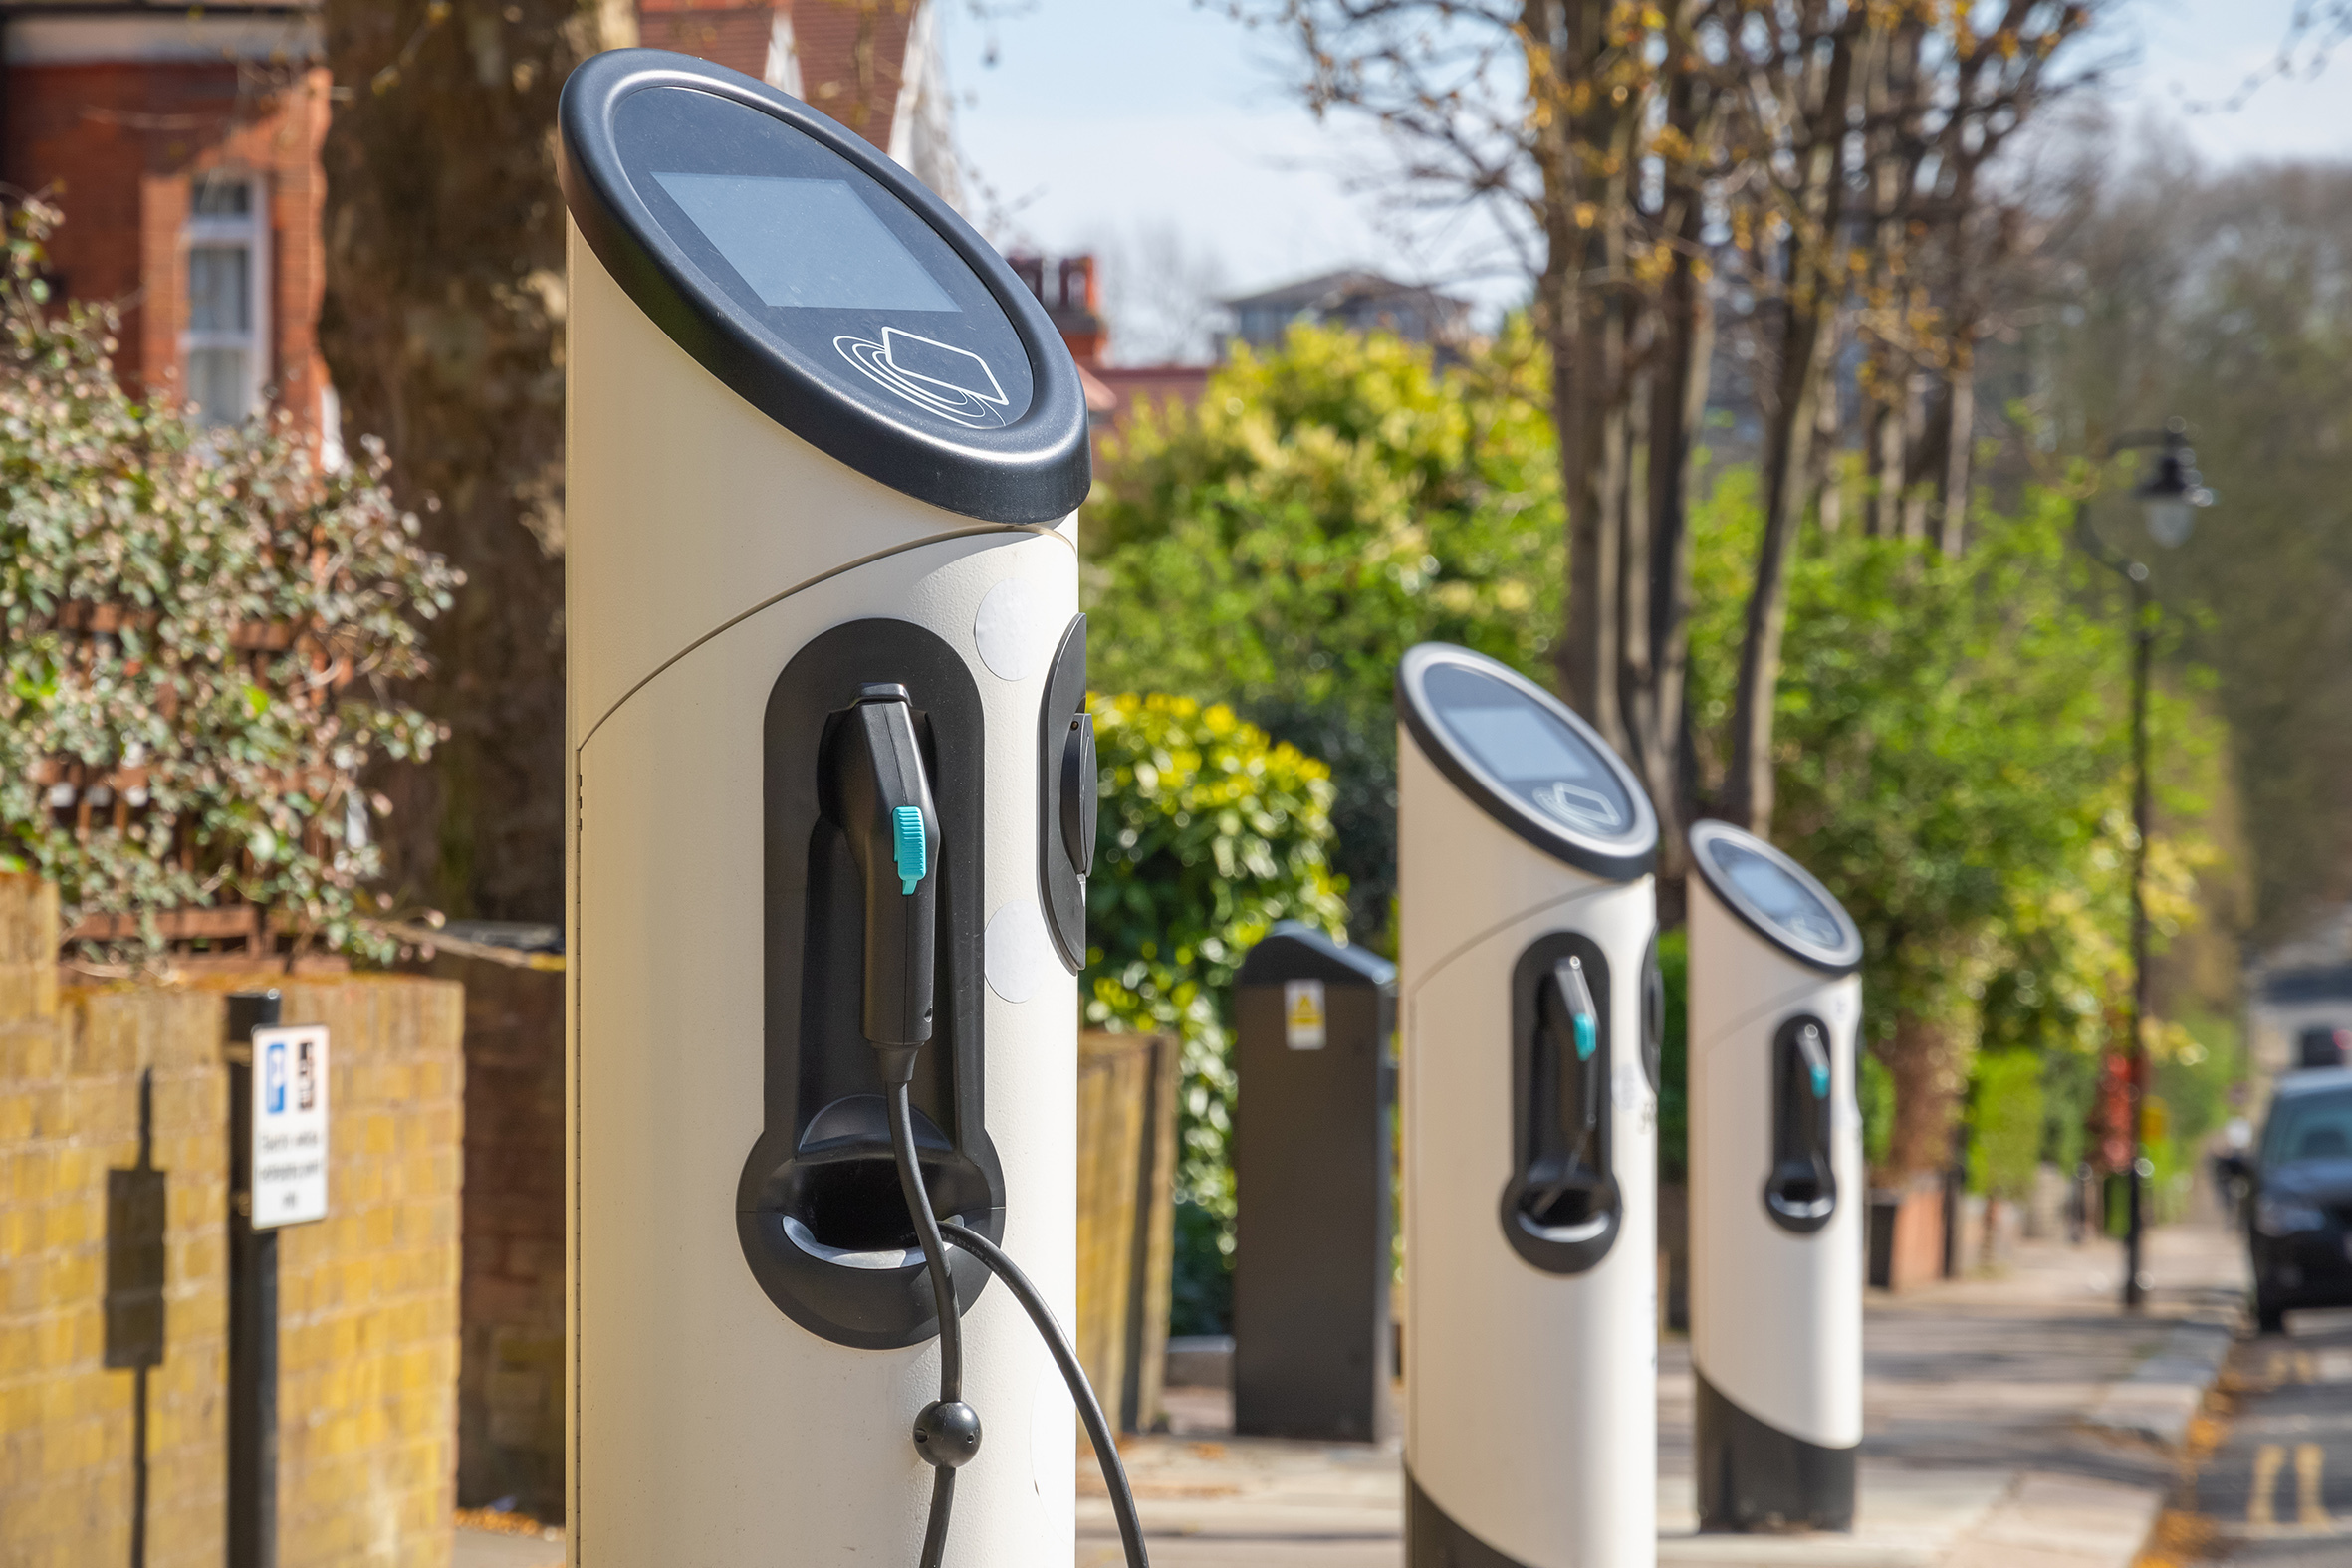 TfL says London needs 60,000 electric charge points by 2030